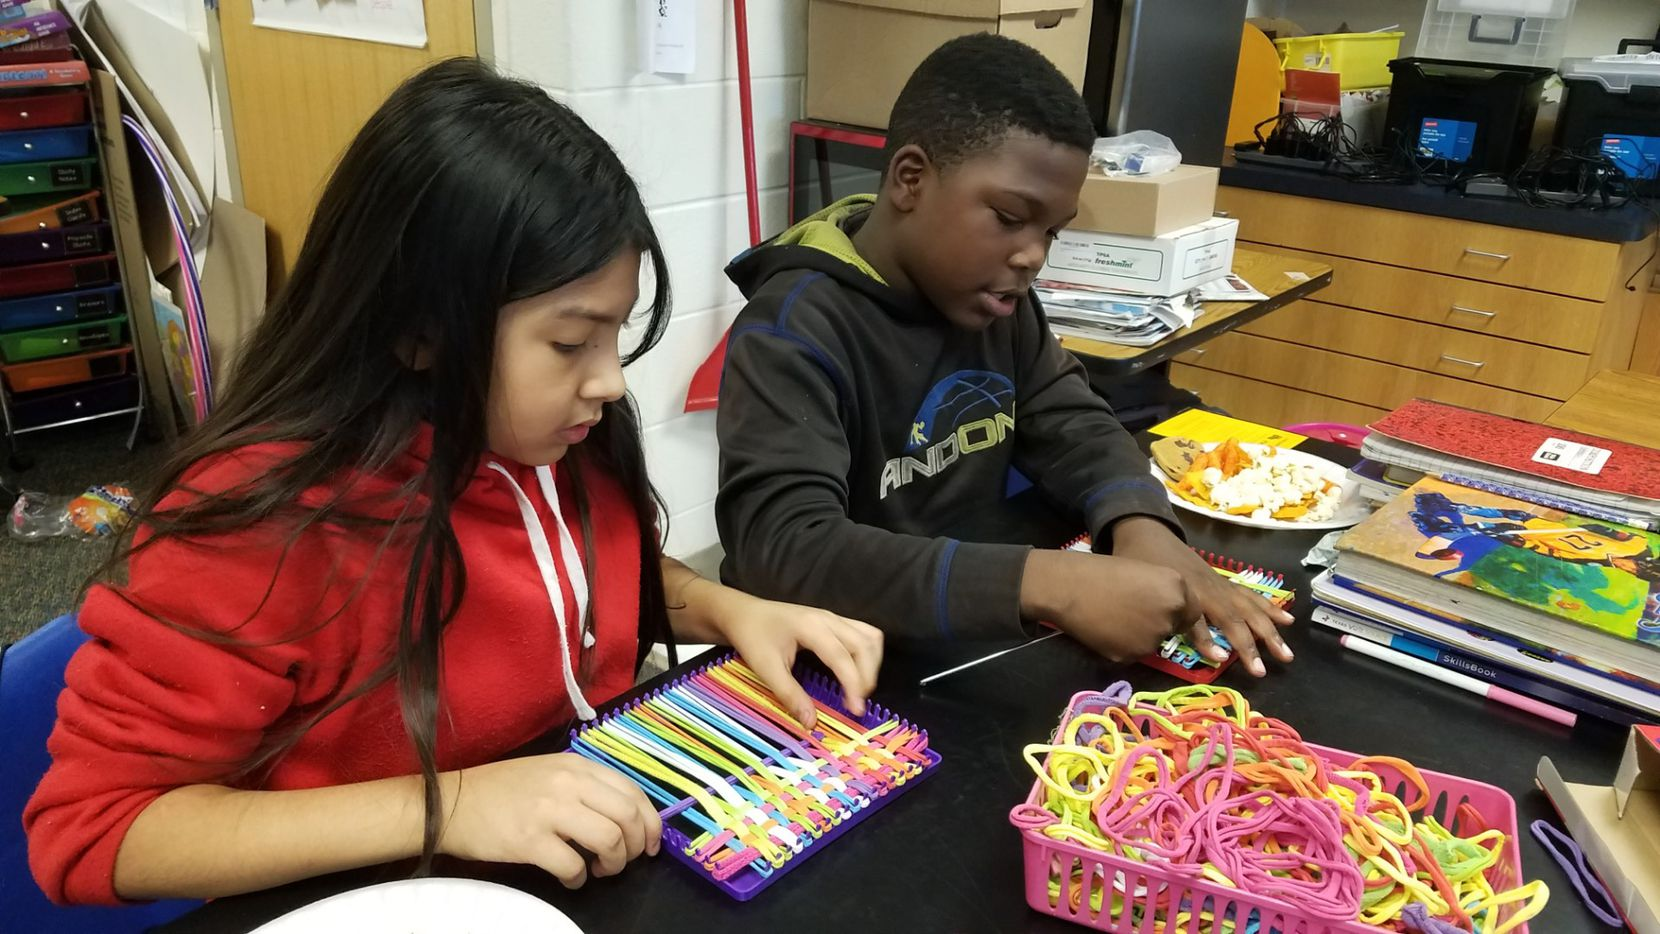 Diana Ramirez, left, and Robert Reddick work on their crocheting at Wilmer-Hutchins Elementary School. The group of fifth-graders spend a portion of their recess learning how to crochet. Their teacher, Charlotte Geisler, collects their creations and donates them to local homeless shelters.